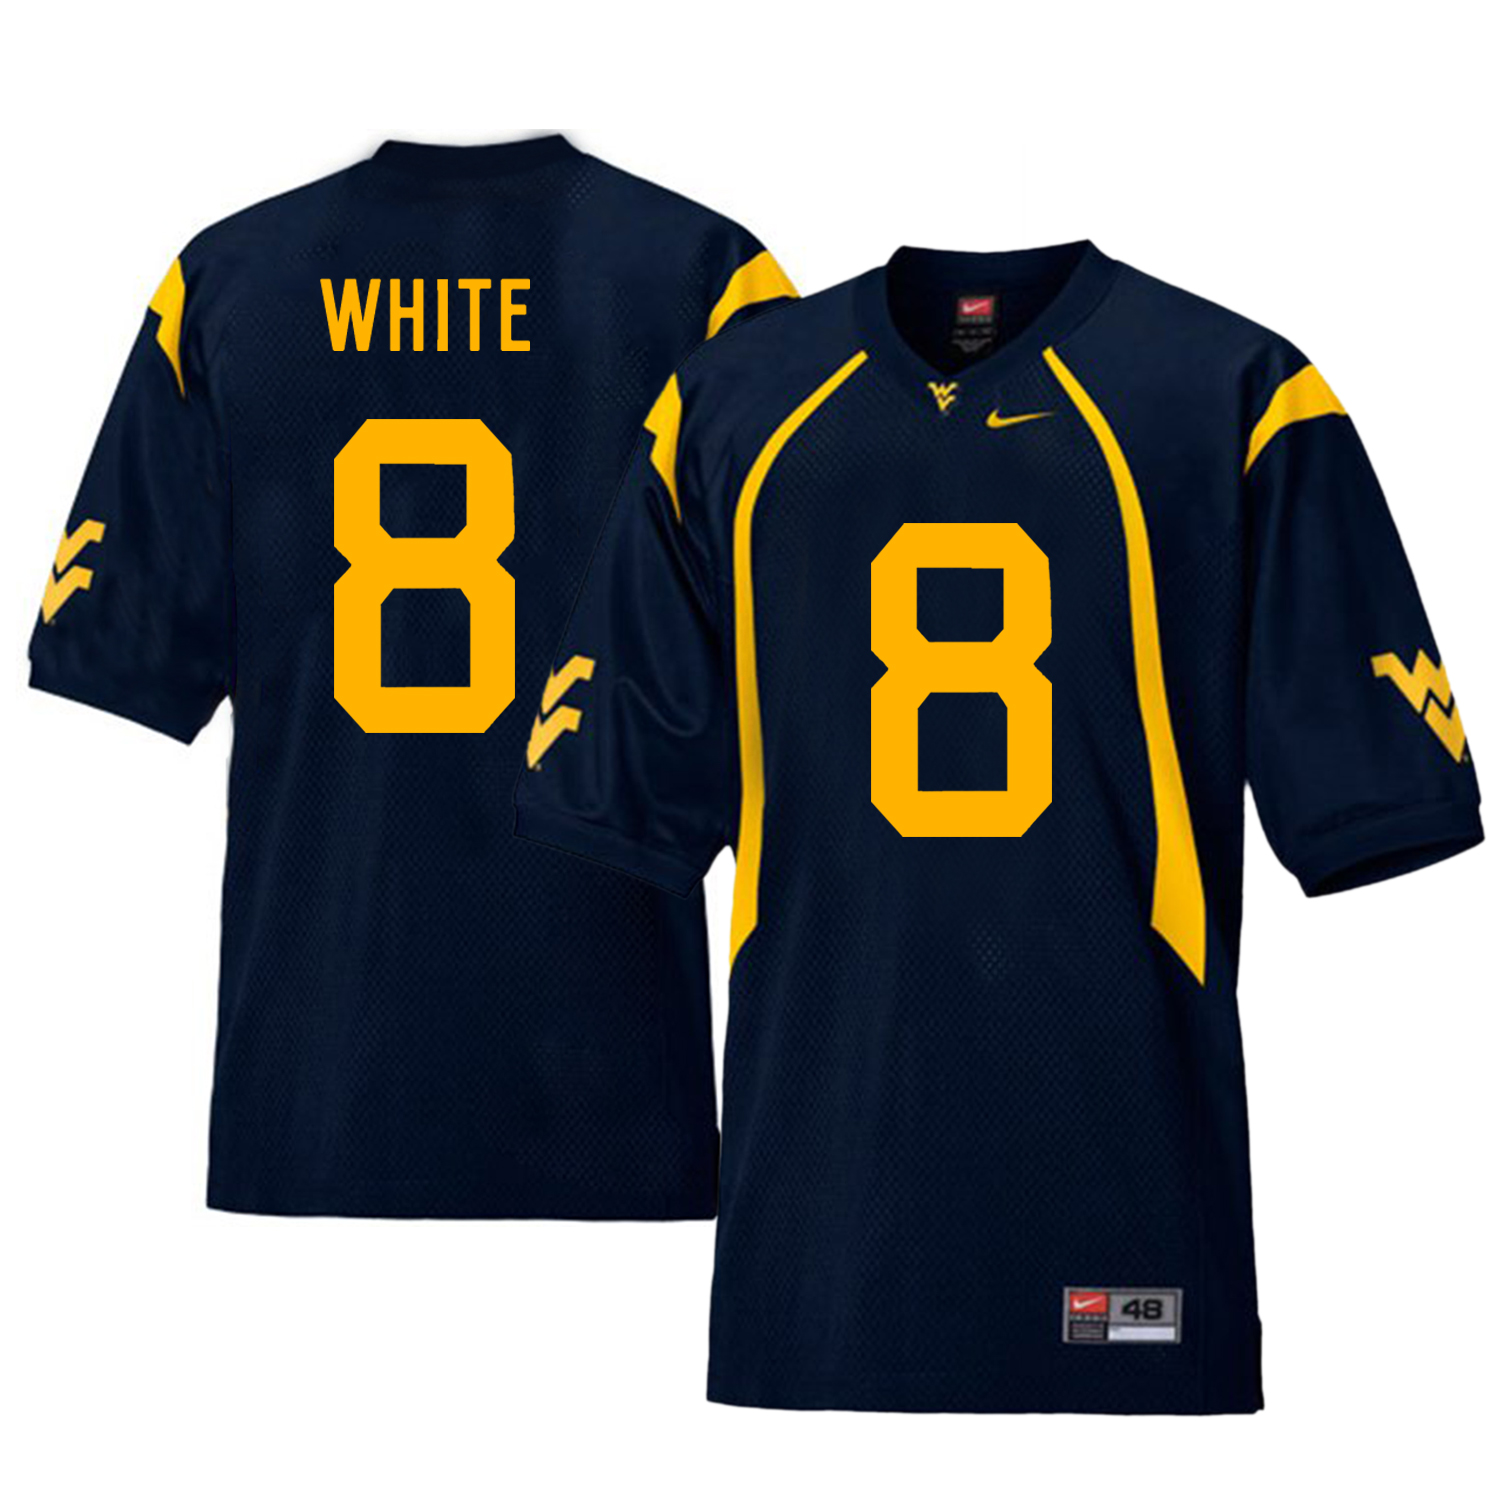 West Virginia Mountaineers 8 Kyzir White Navy College Football Jersey